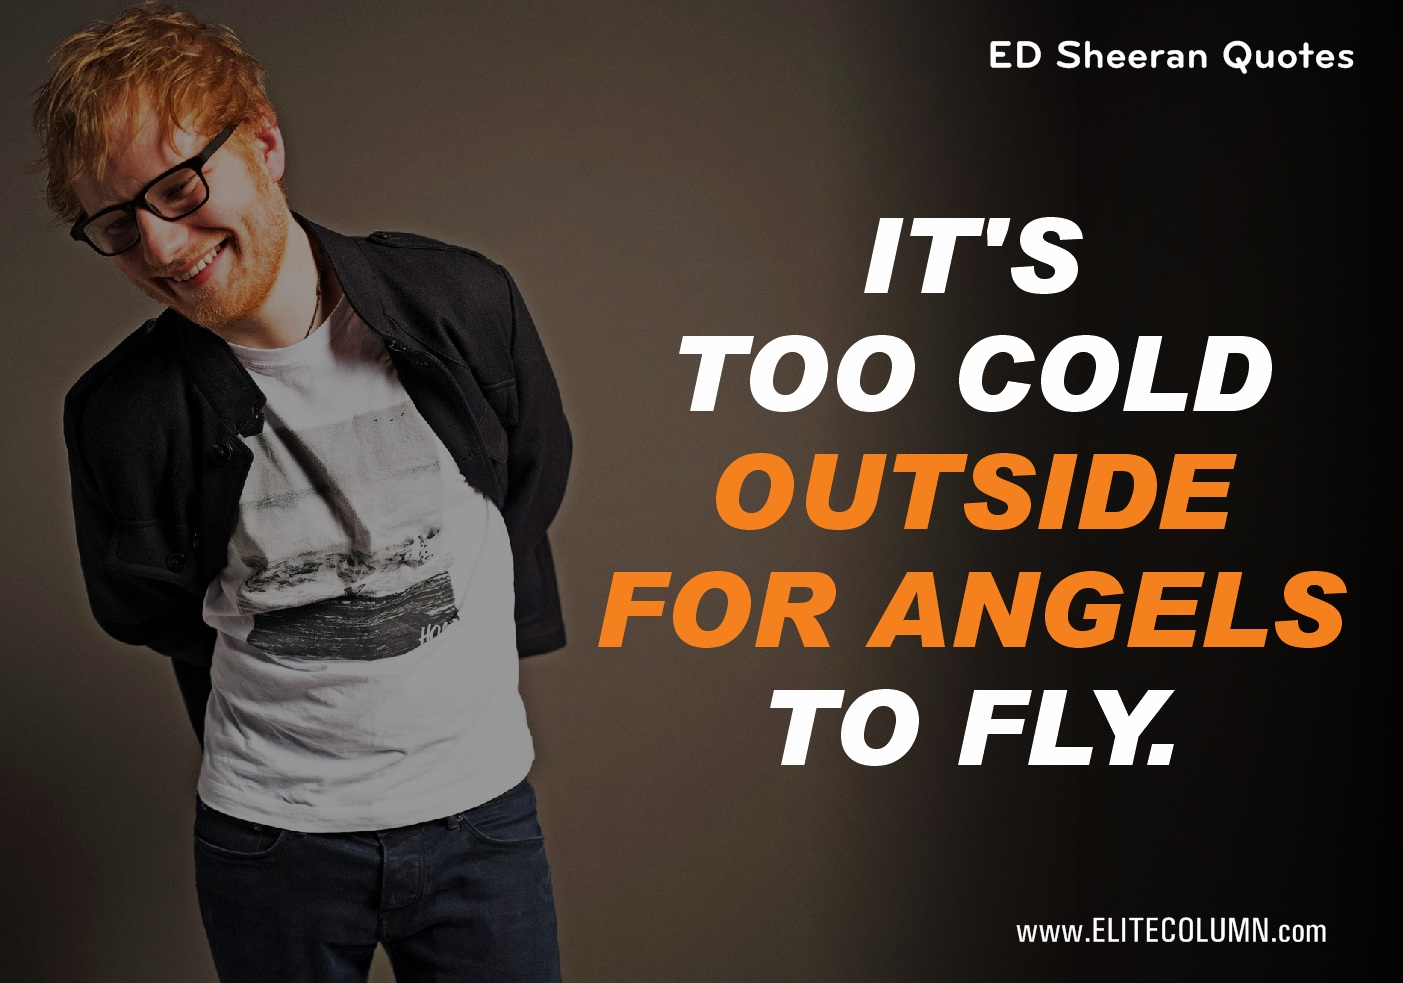 Ed Sheeran Quotes (4)